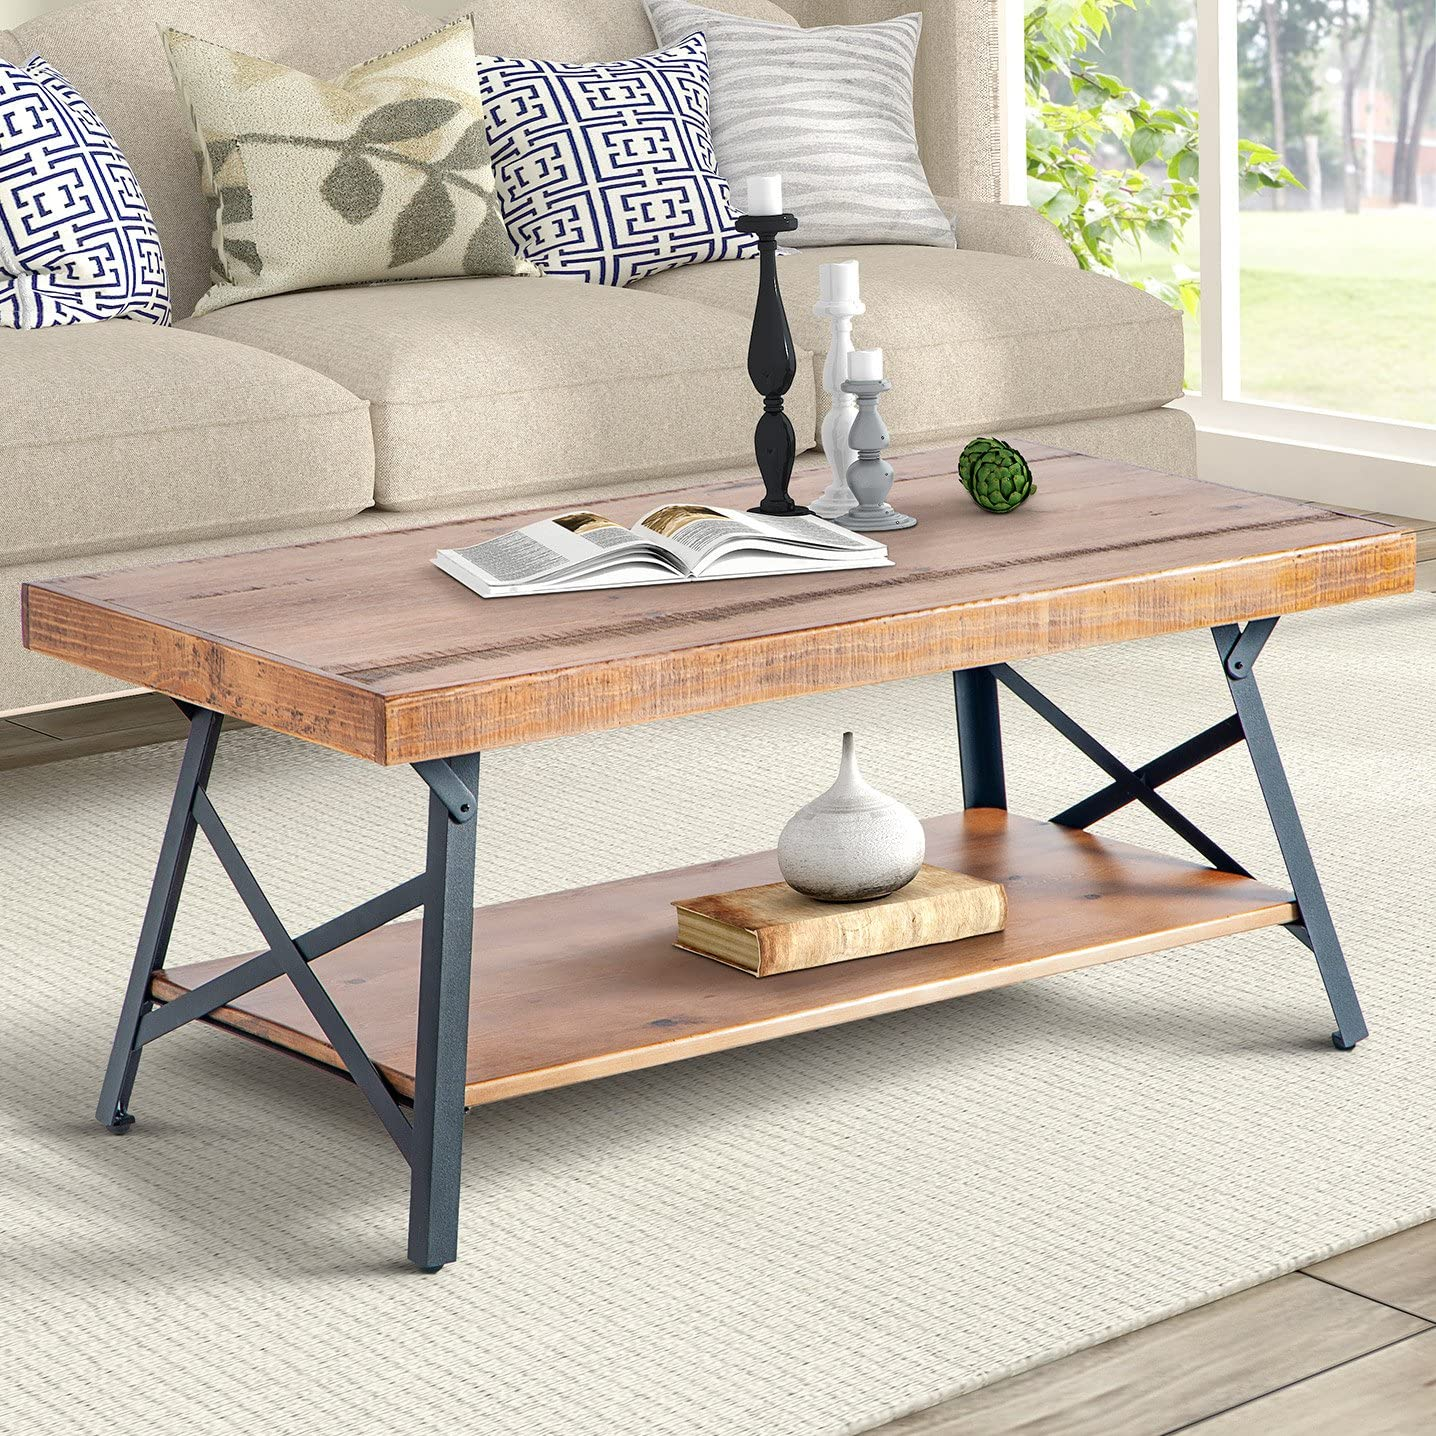 Harper Bright Designs 43″ Lindor Collection Wood Coffee Table